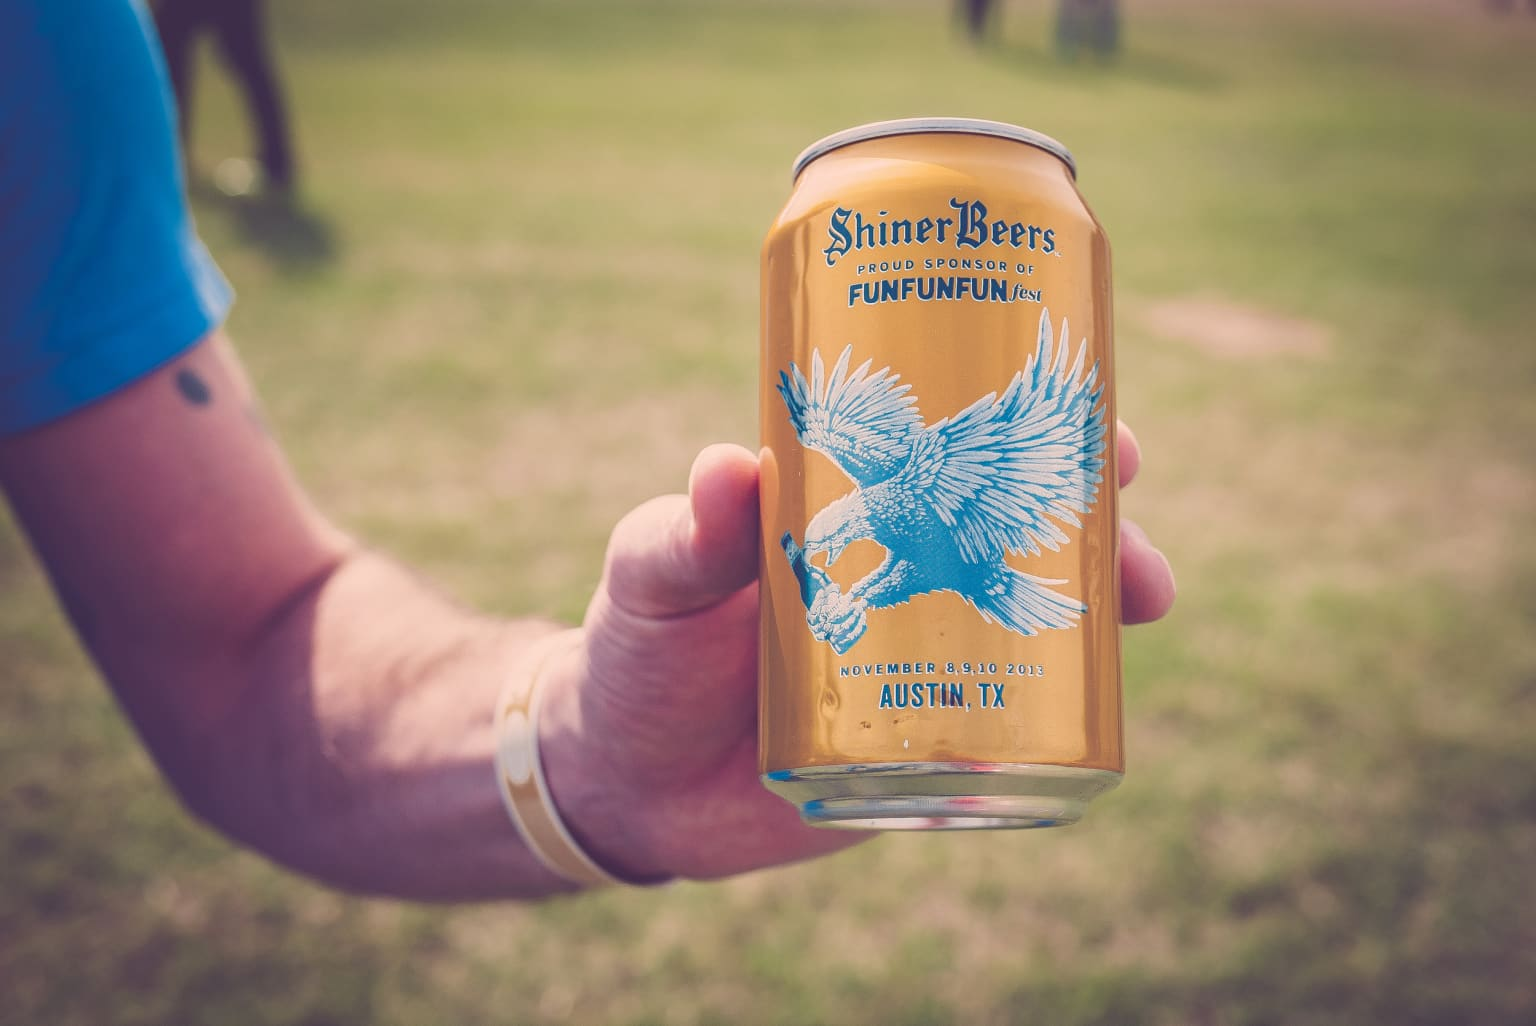 Shiner Beer 360 Campaign - Event